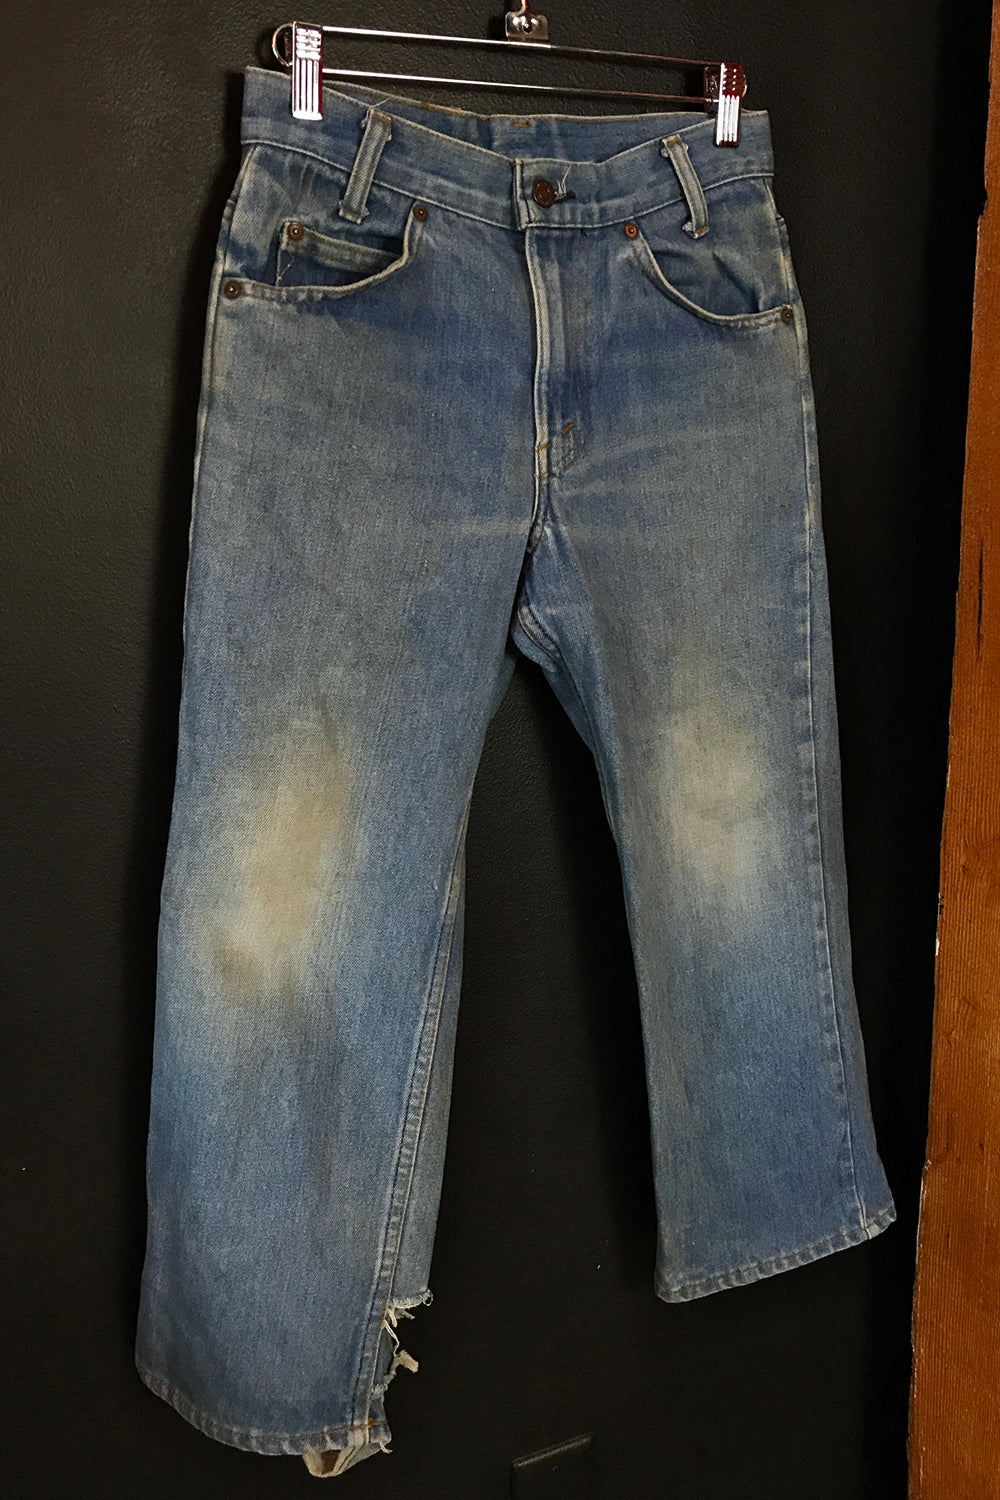 Vintage Levi's Worn and Faded Orange Tab Cropped Jeans